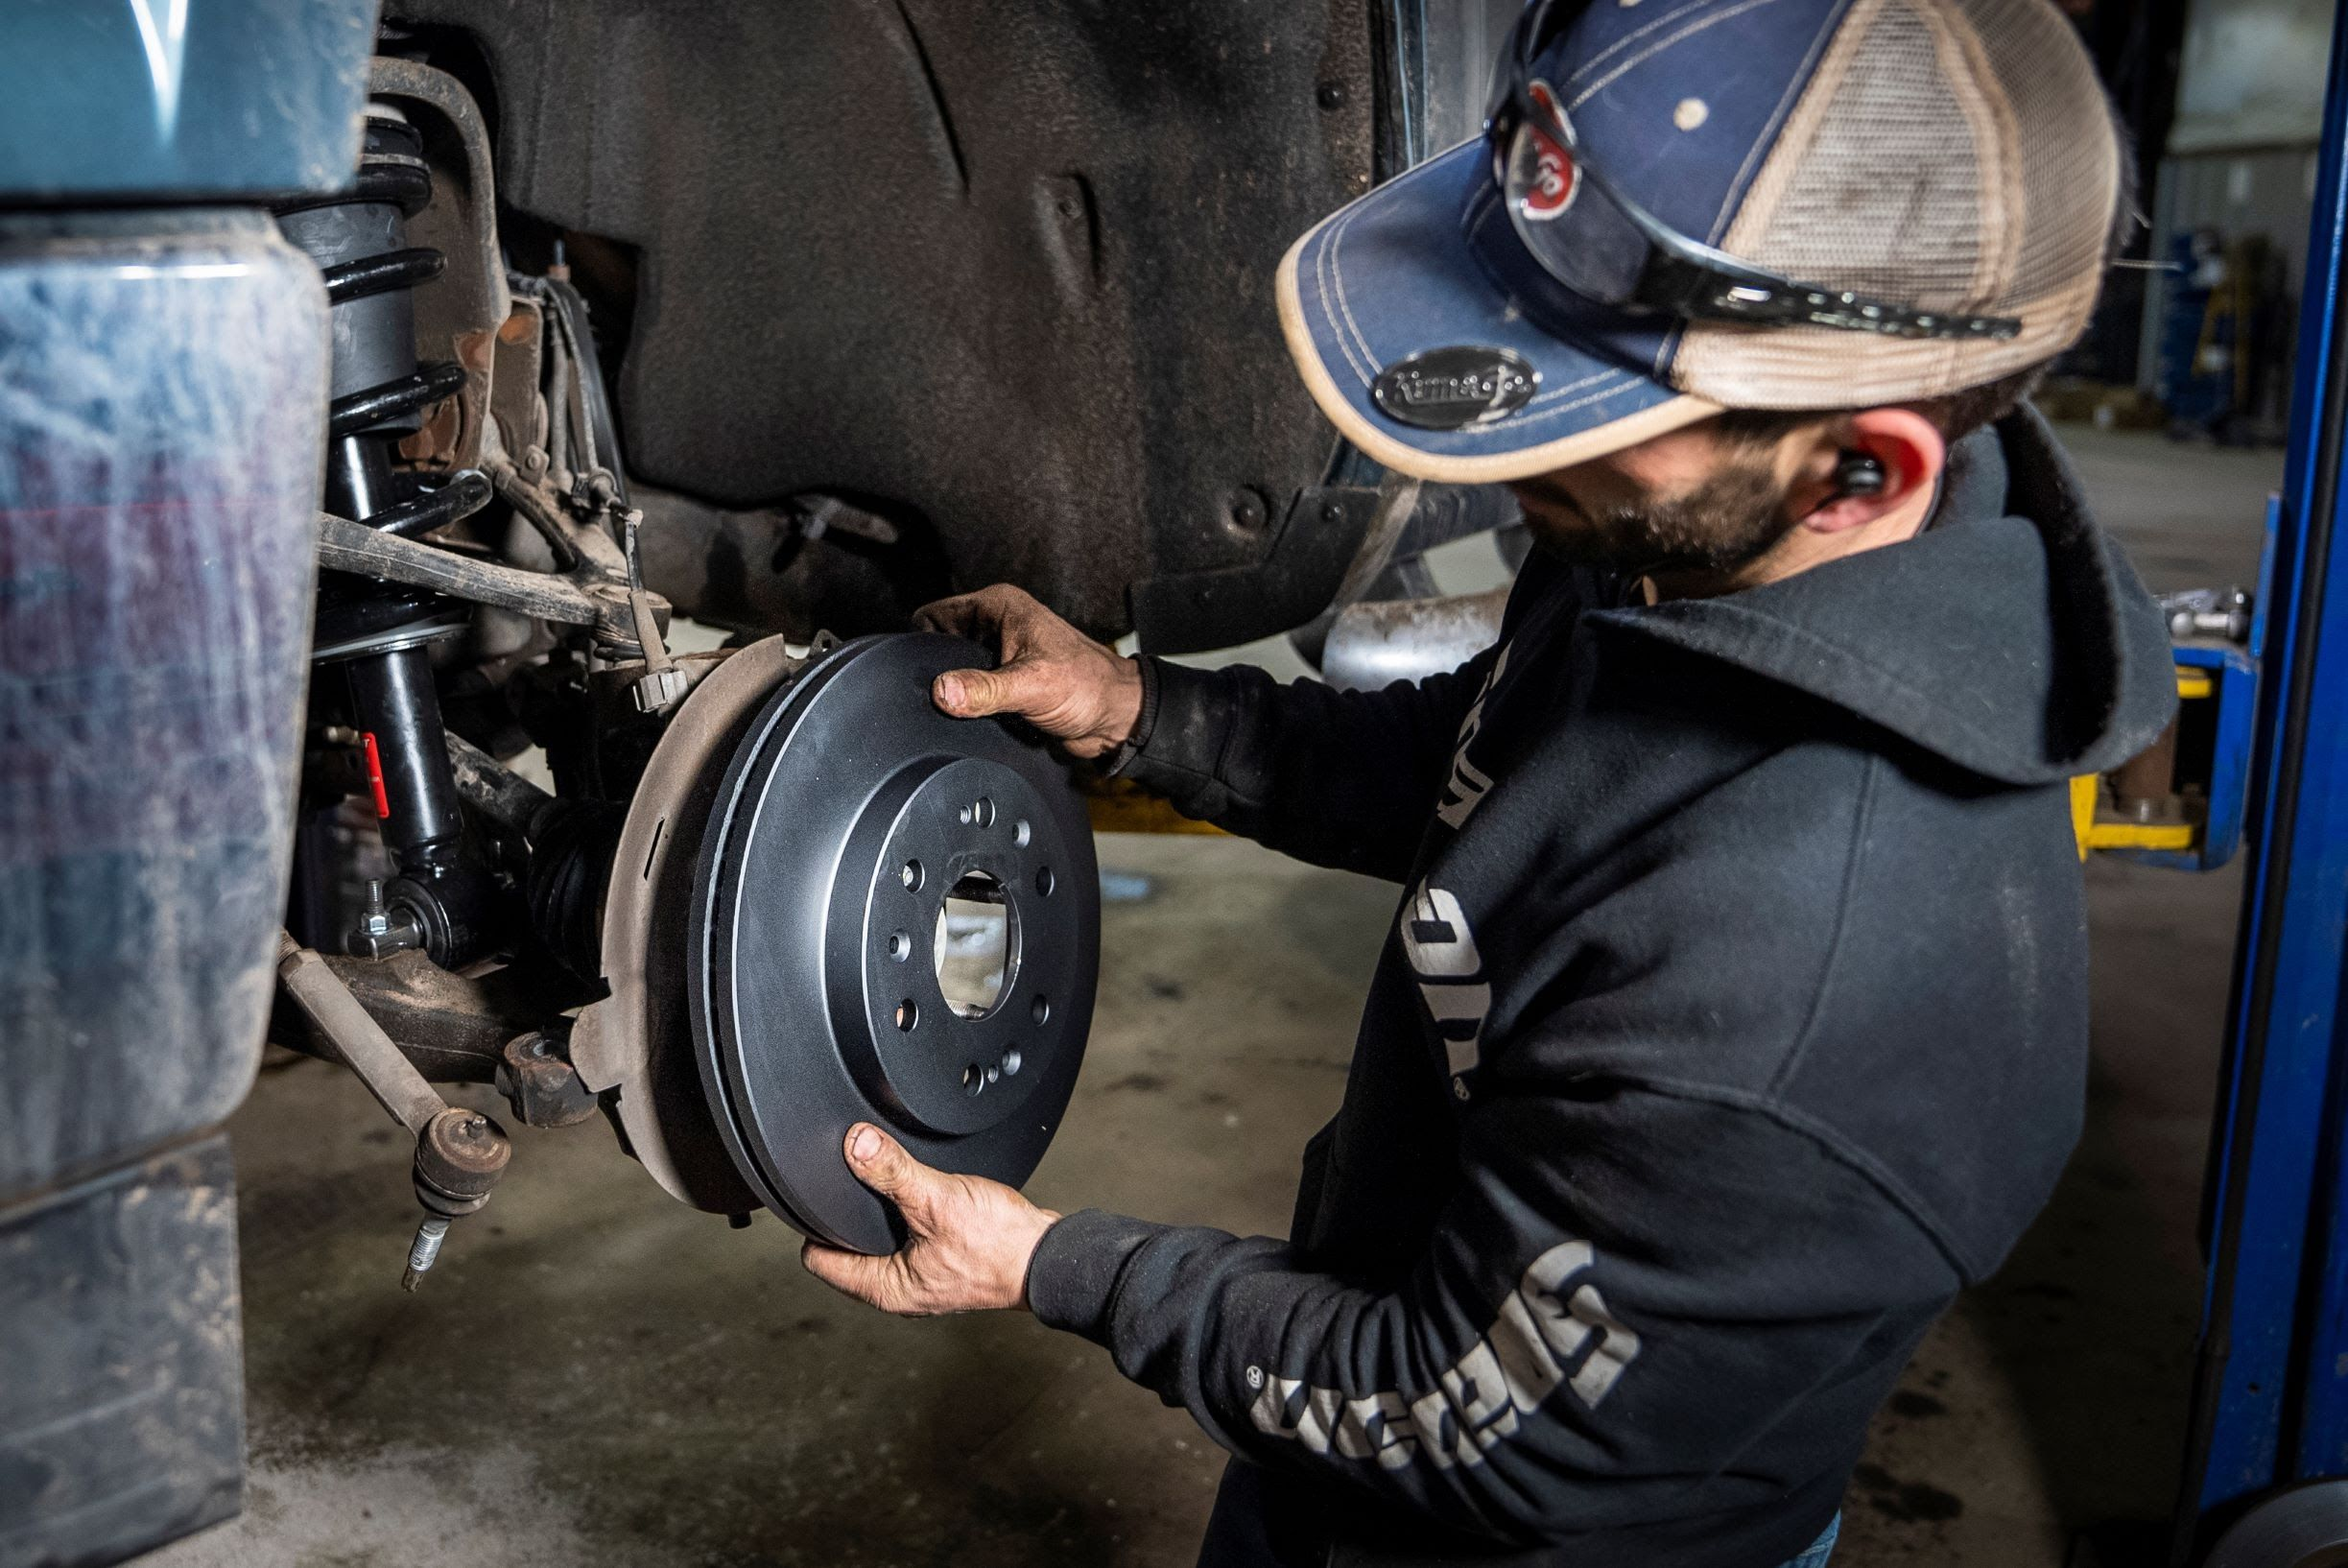 Affordable Heating And Air Conditioning In Washington | Precision Tune Auto Care